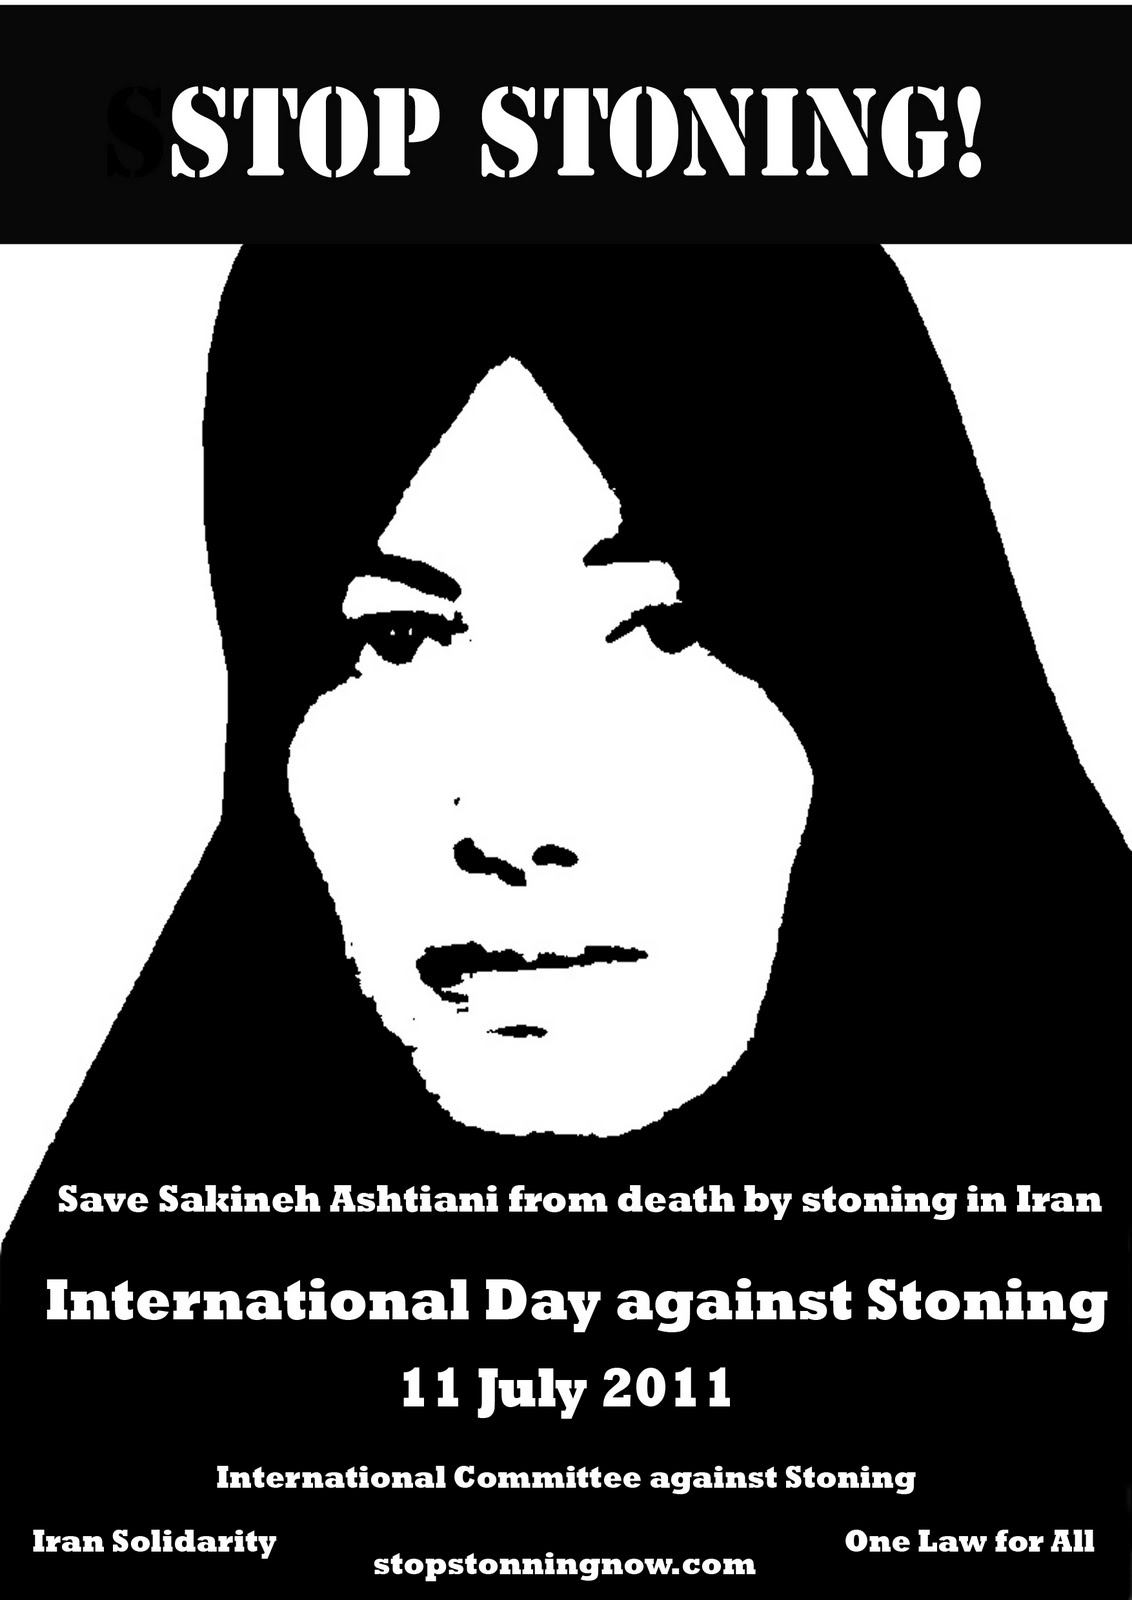 Support International Day Against Stoning, Richard Dawkins Foundation